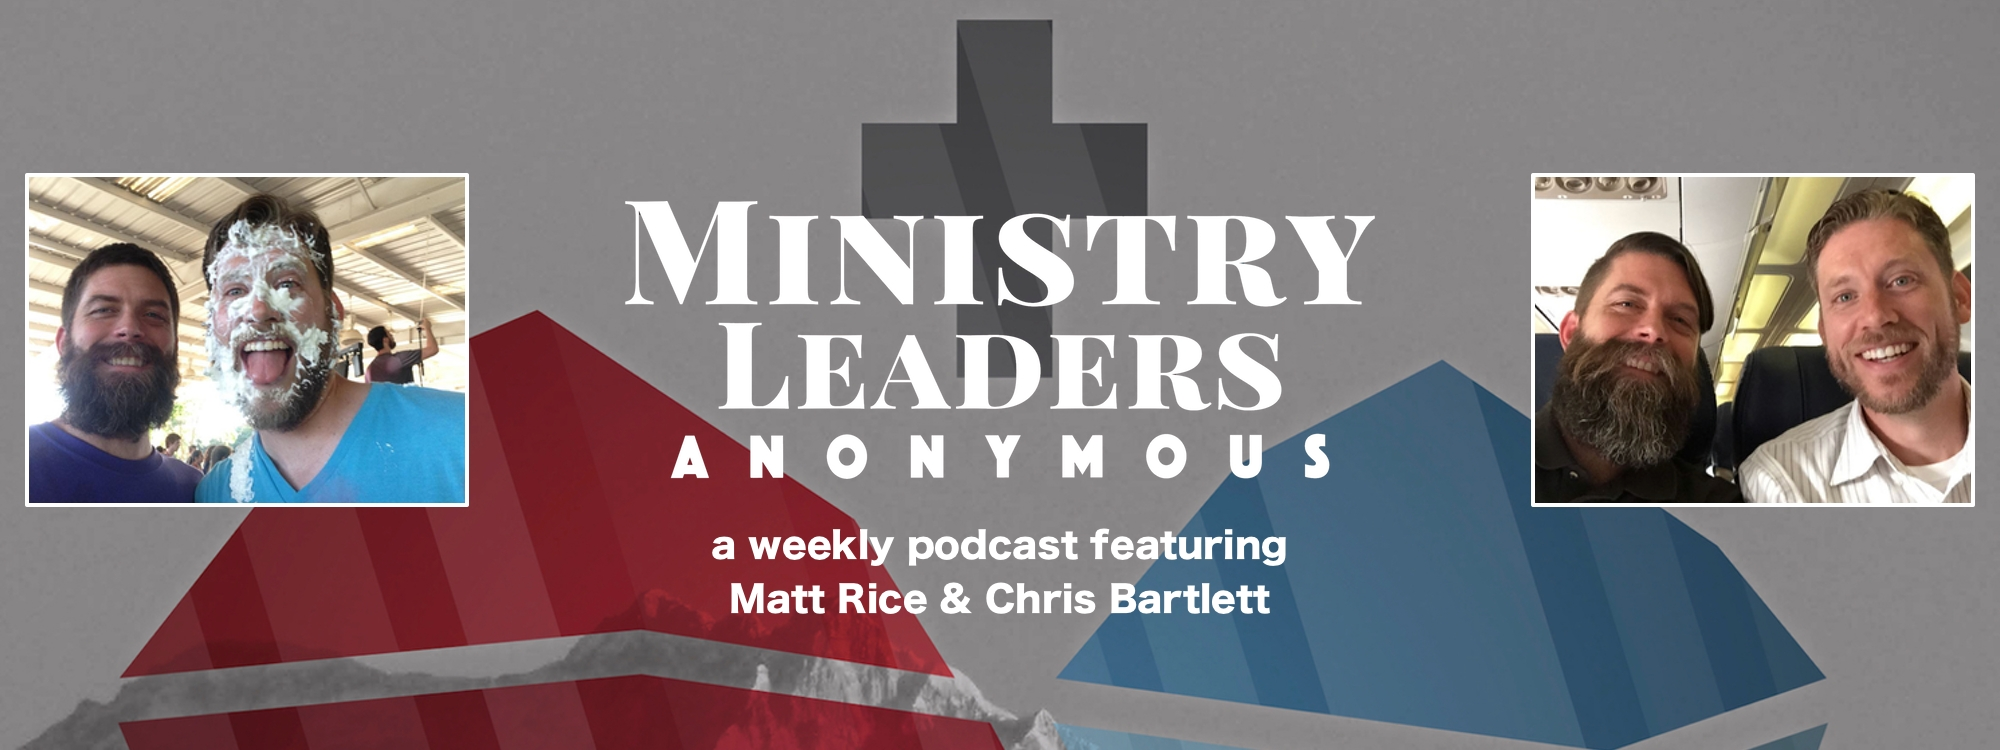 Ministry Leaders Anonymous, podcast, podcasting, catholic, chris bartlett, matt rice